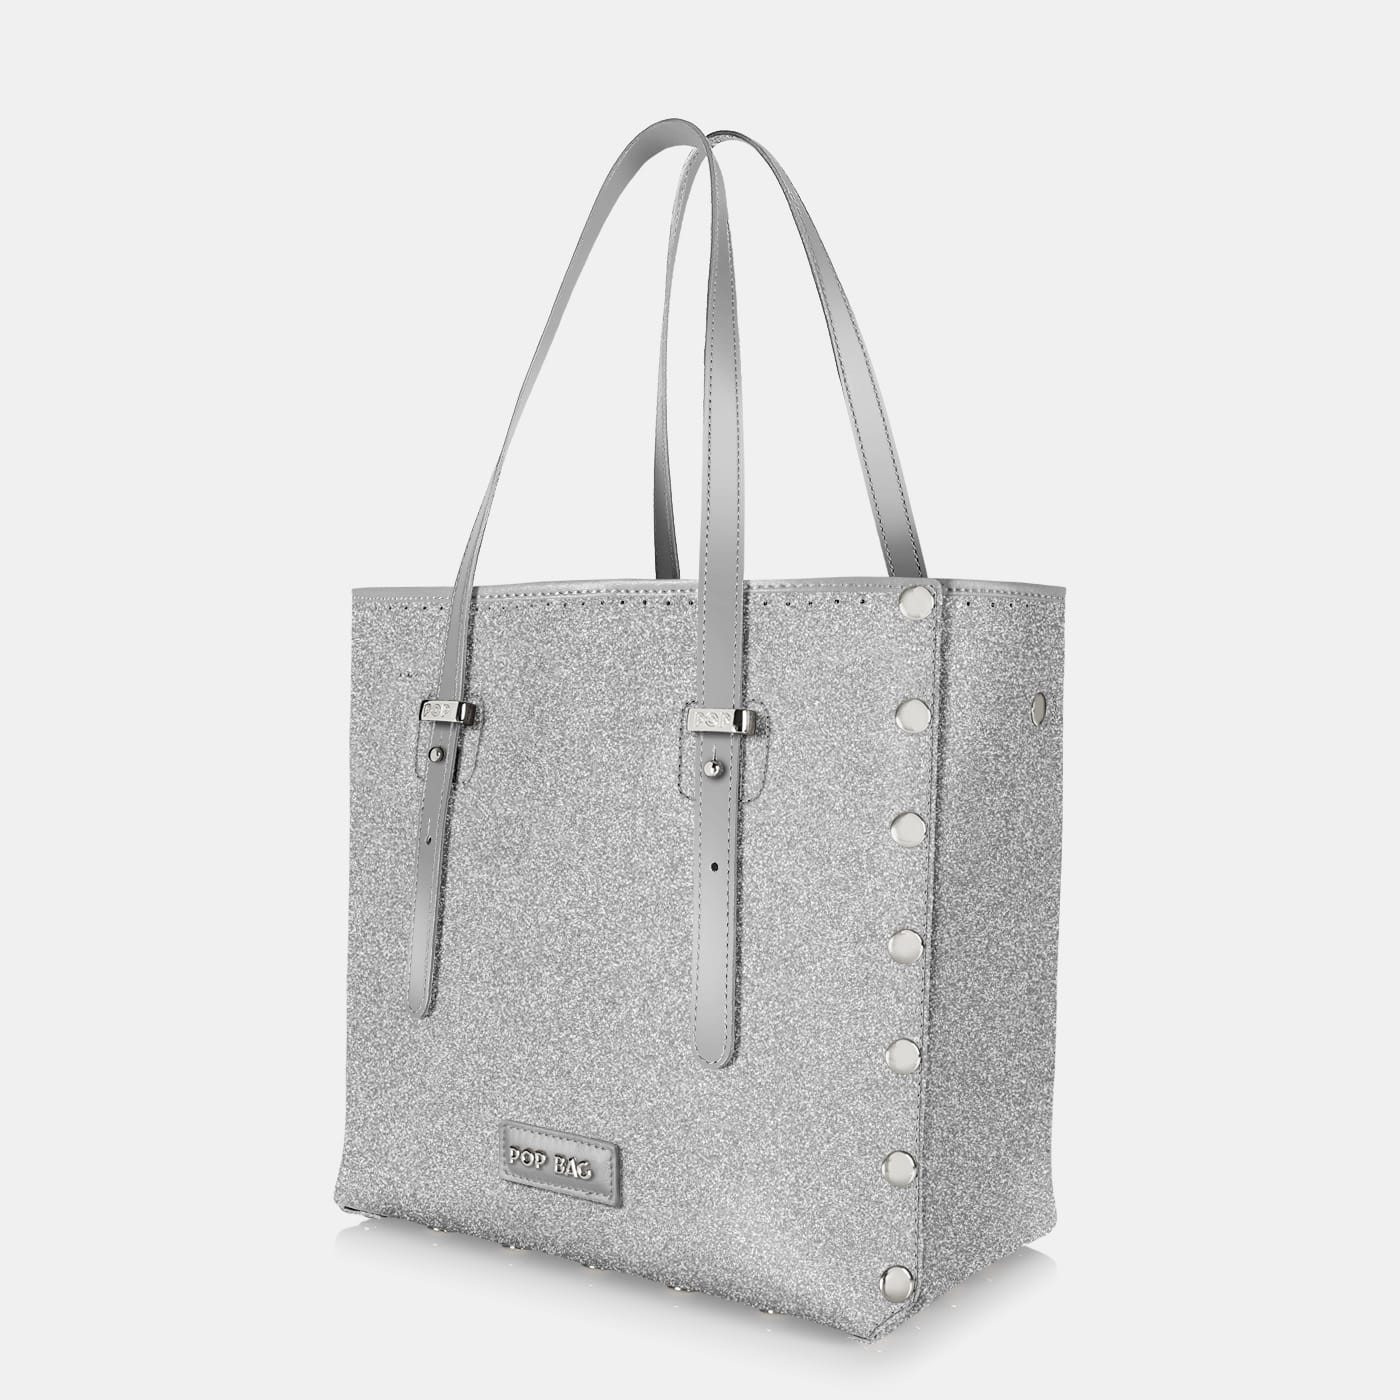 Pop Stardust Bag - Silver Glitter - Medium - Side View